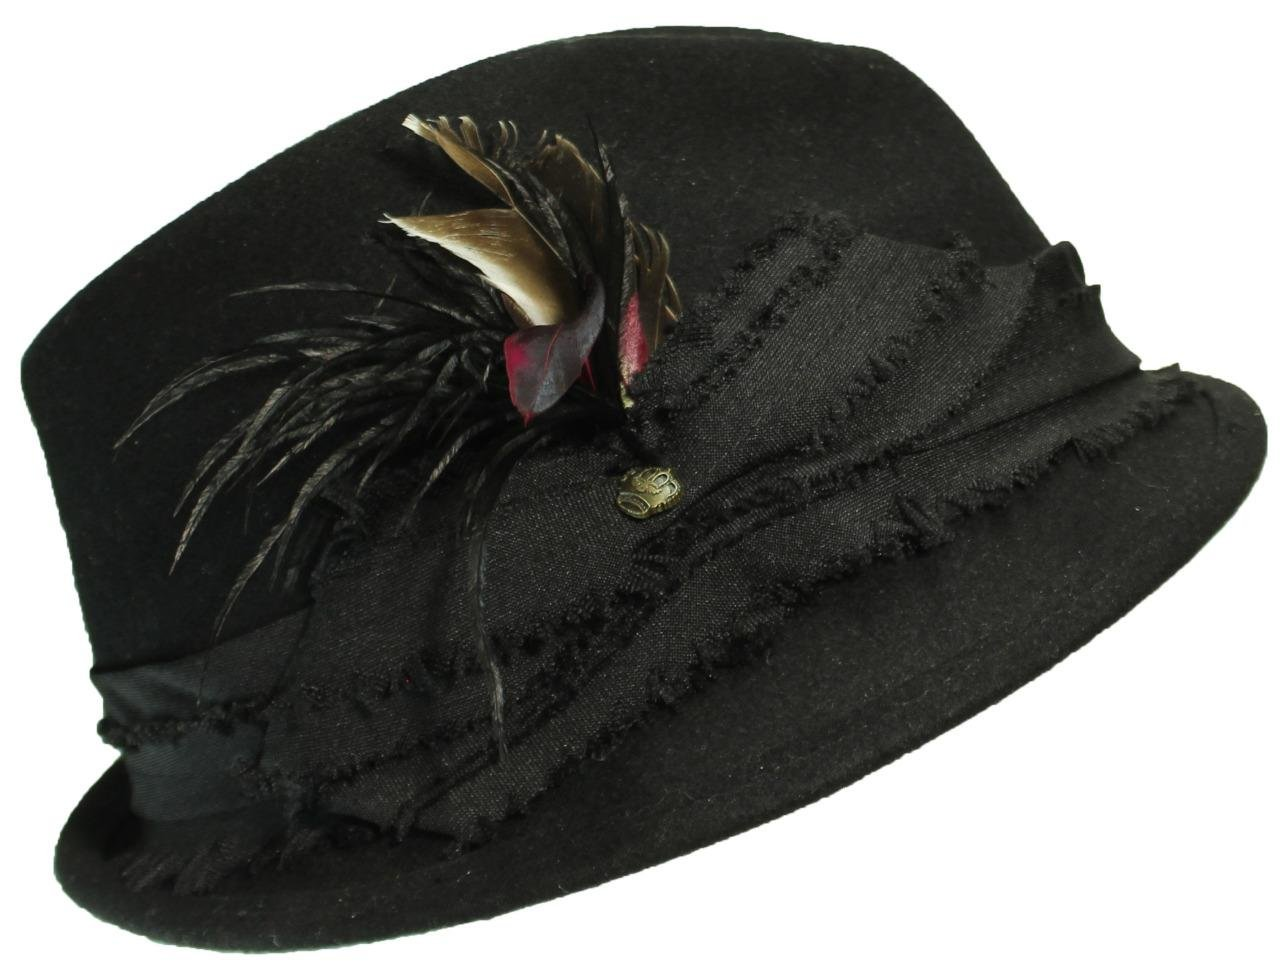 ANGELA & WILLIAM Womens Wool Fedora Hat W/Feathers & Band with Knot & Charm - Black